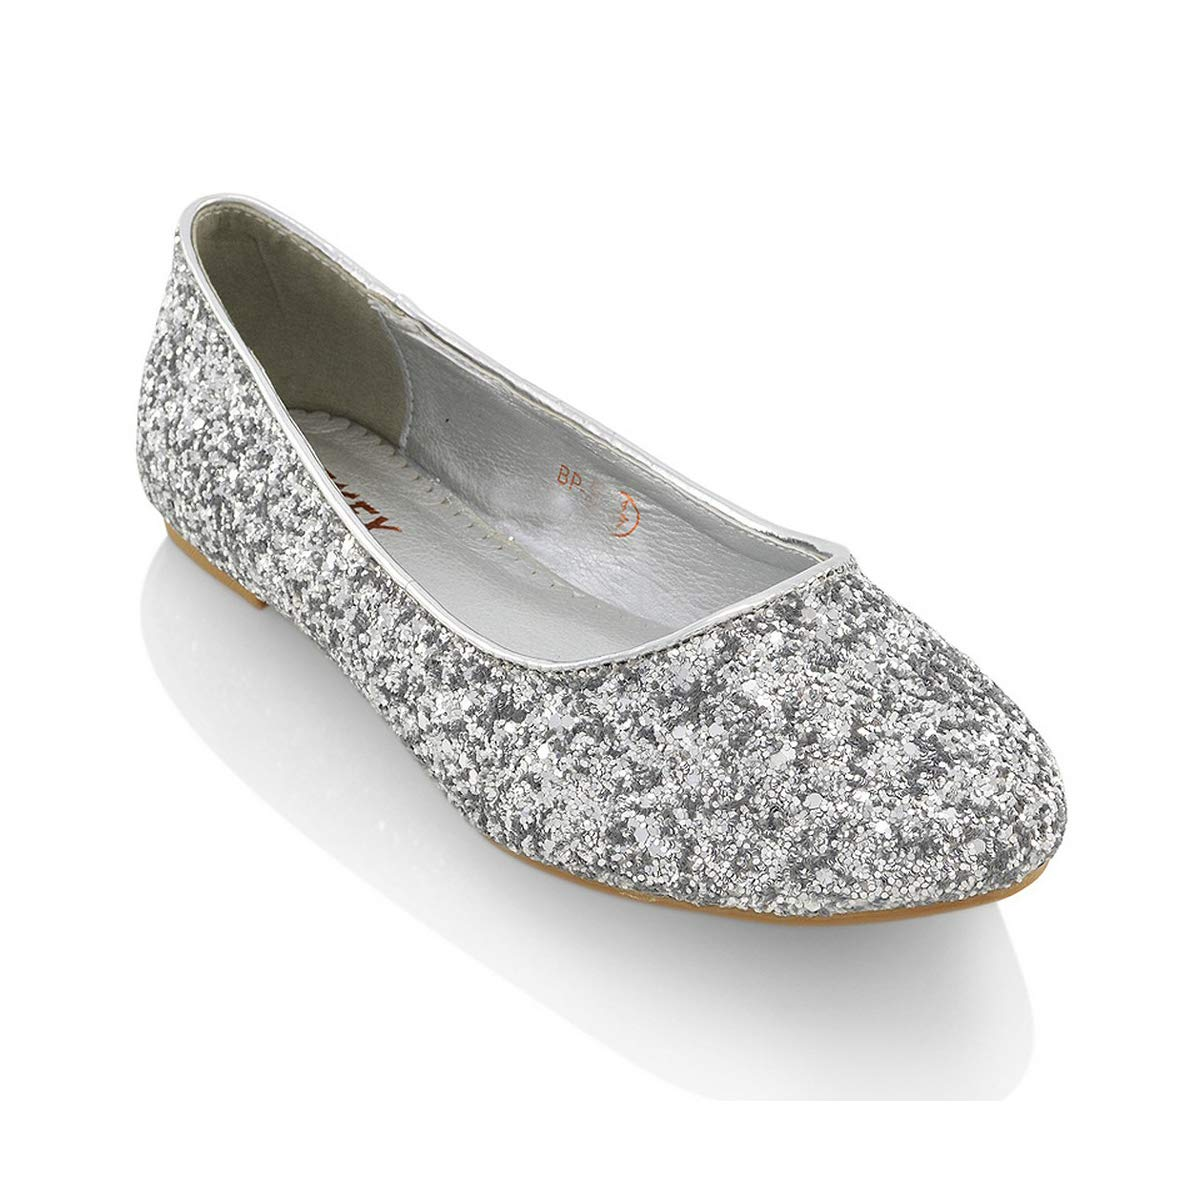 acfa3581a03c ESSEX GLAM Womens Ladies Flat Ballet Glitter Bridal Bridesmaid Prom Dolly Sparkly  Pumps Slip On Shoes Size 3-9  Amazon.co.uk  Shoes   Bags